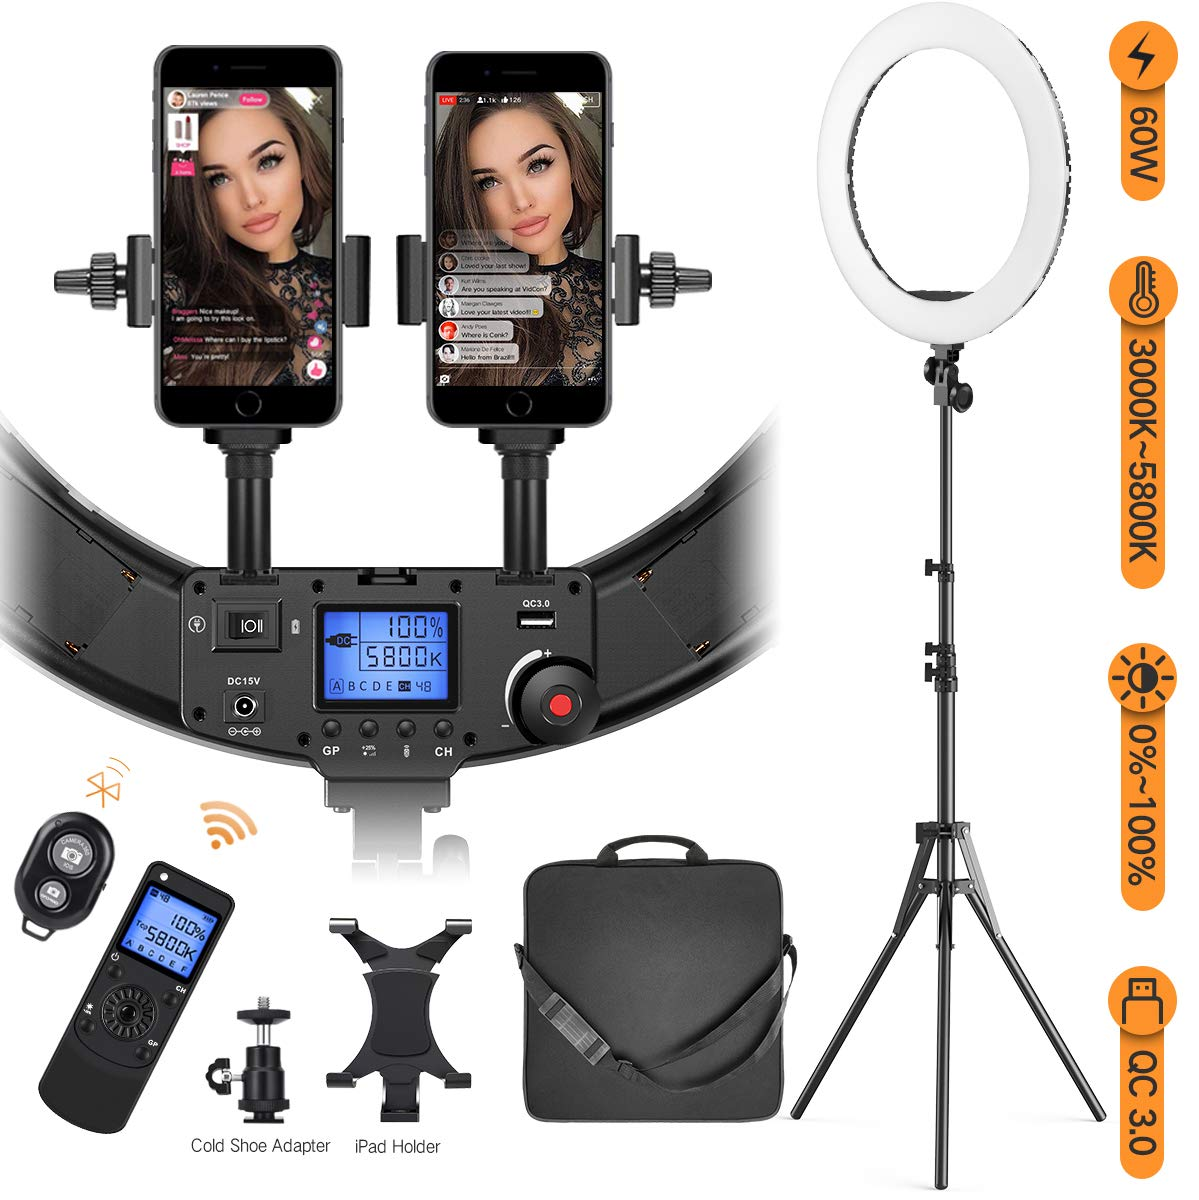 Ring Light with Wireless Remote and iPad Holder, Pixel 19'' Bi-Color Ring Light with Stand,60W 3000-5800K CRI≥97 Light Ring with USB QC 3.0 for Vlogging Portrait Makeup Video Shooting